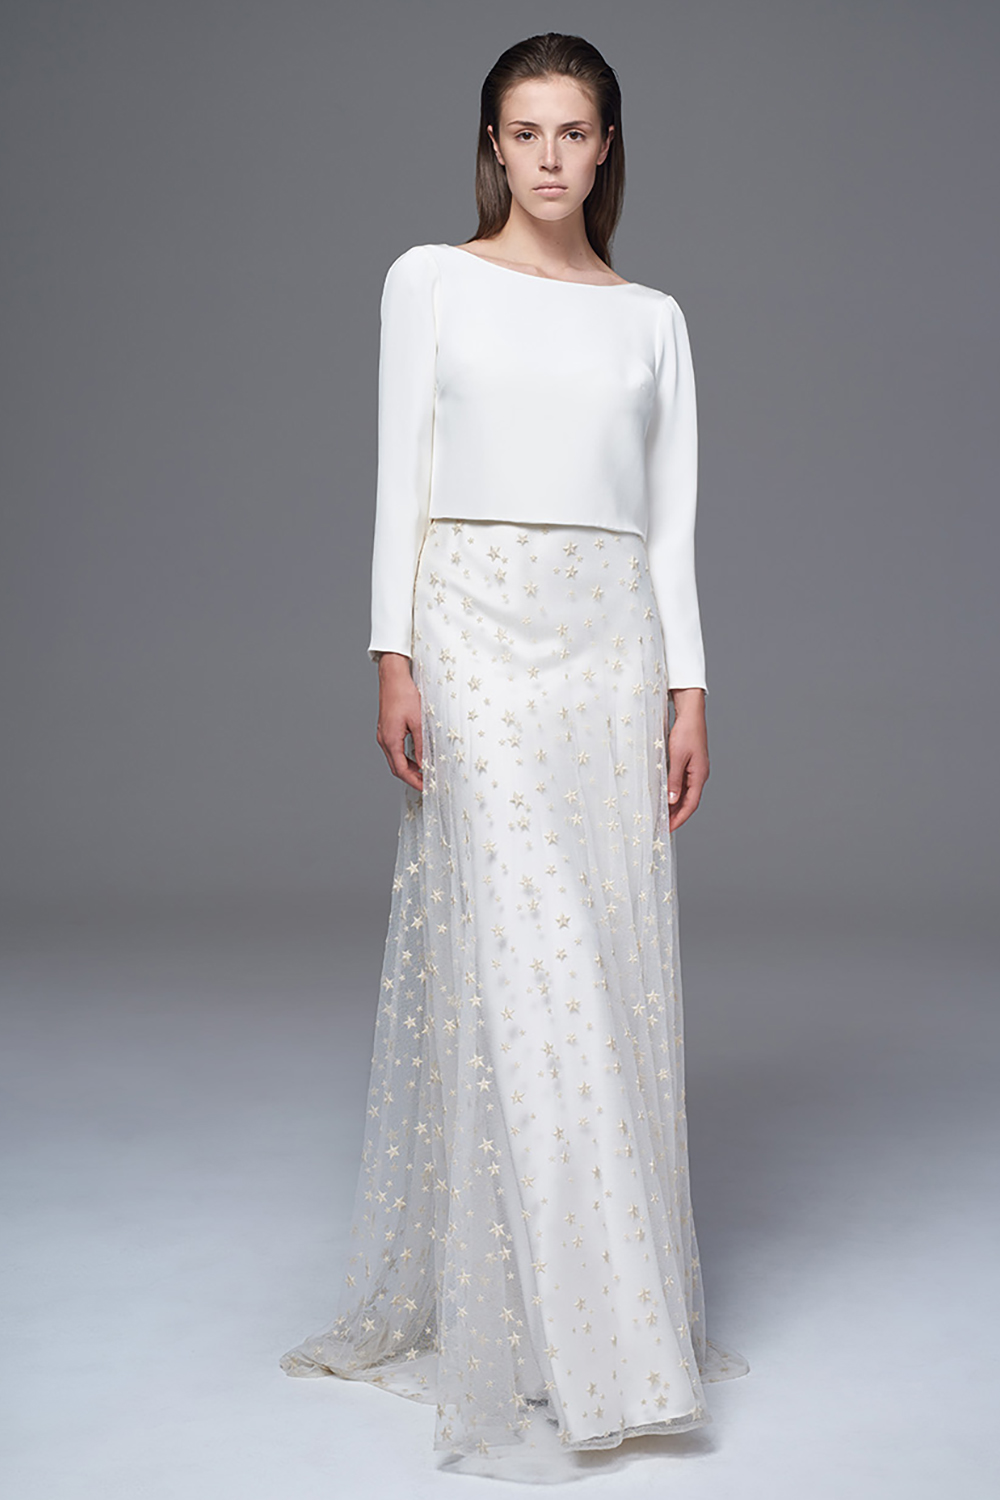 THE LAURA DRAPED AND LONG SLEEVED CREPE TOP WORN WITH THE SHEER TULLE AND EMBROIDERED STAR SKIRT AND CLASSIC IRIS SLIP. BRIDAL WEDDING DRESS BY HALFPENNY LONDON